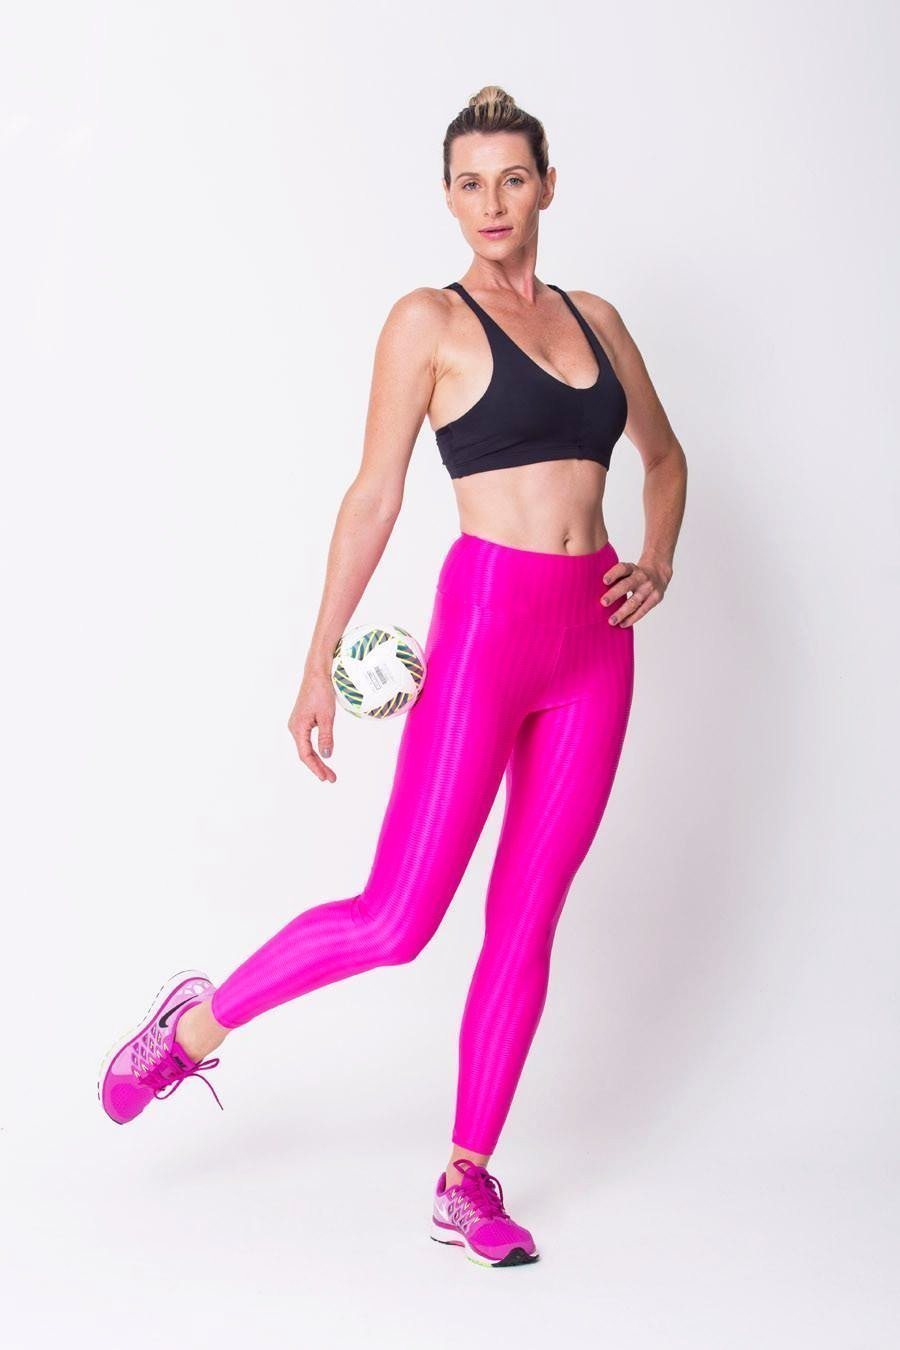 Pink	3D Disco Leggings - Sam's Fitness Goods